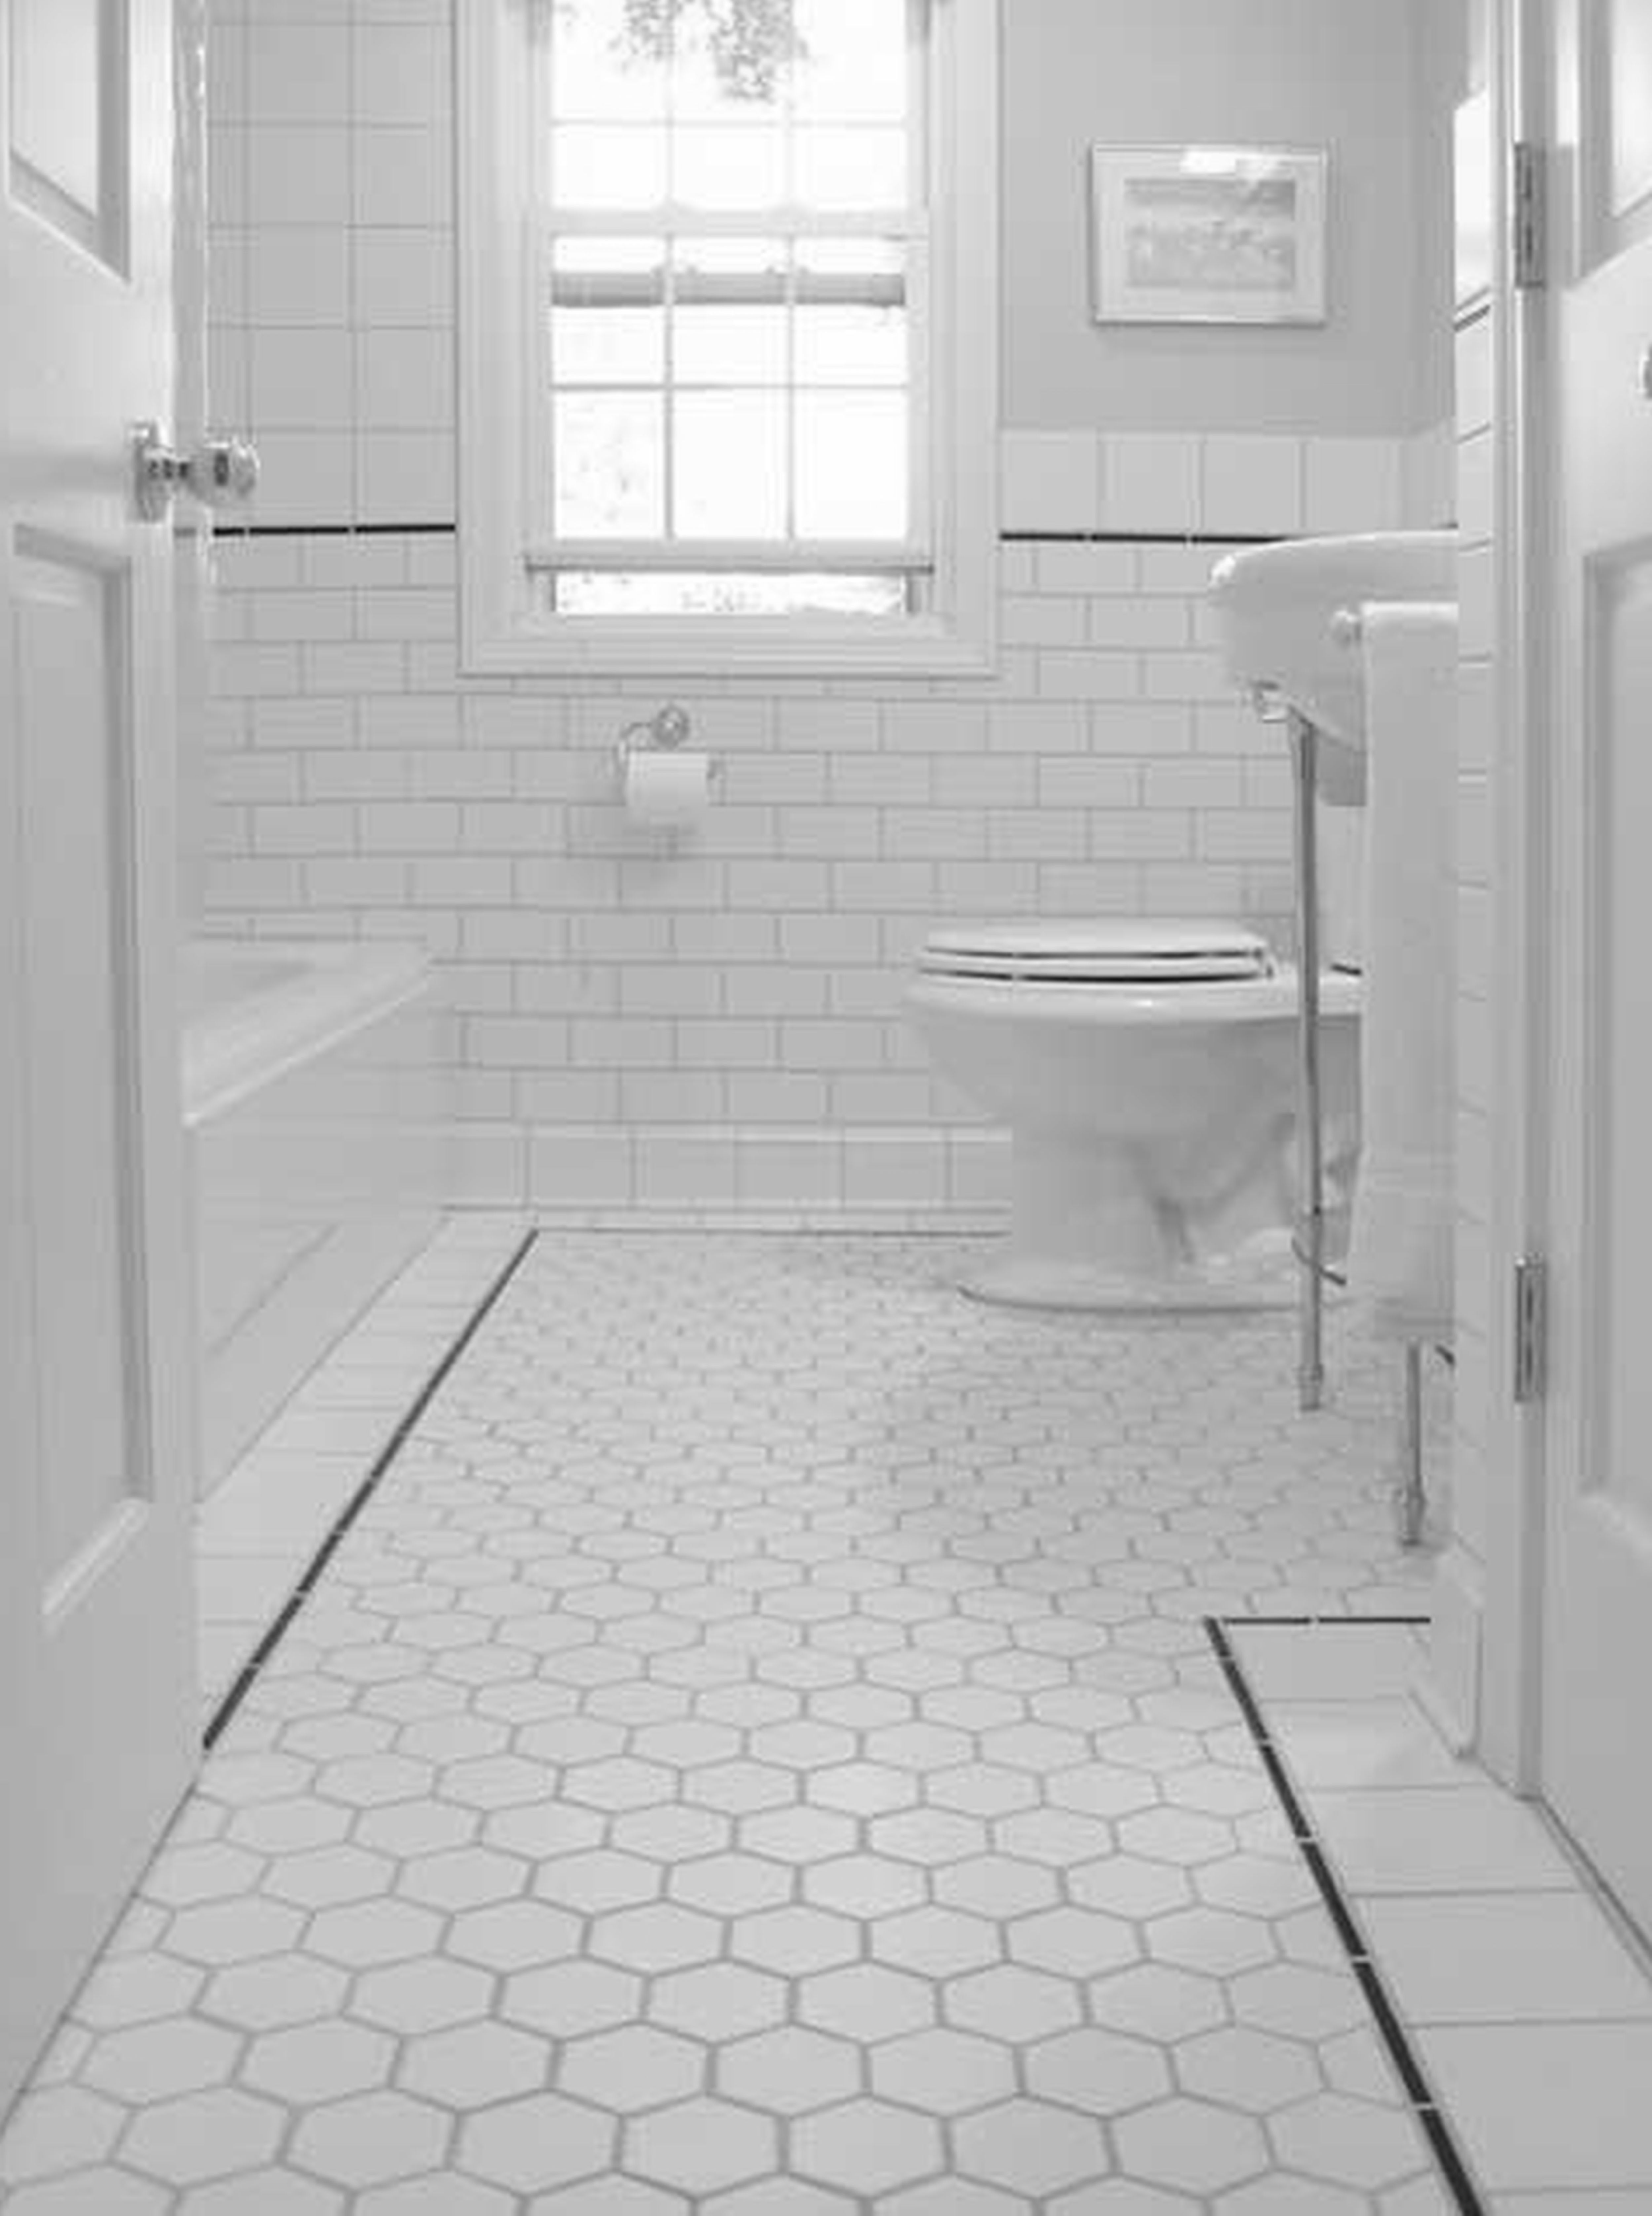 interior-white-pentagon-tile-floor-combined-with-white-toilet-also-glass-windows-on-the-white-wall-excellent-white-floor-tiles-bathroom-brighten-your-house